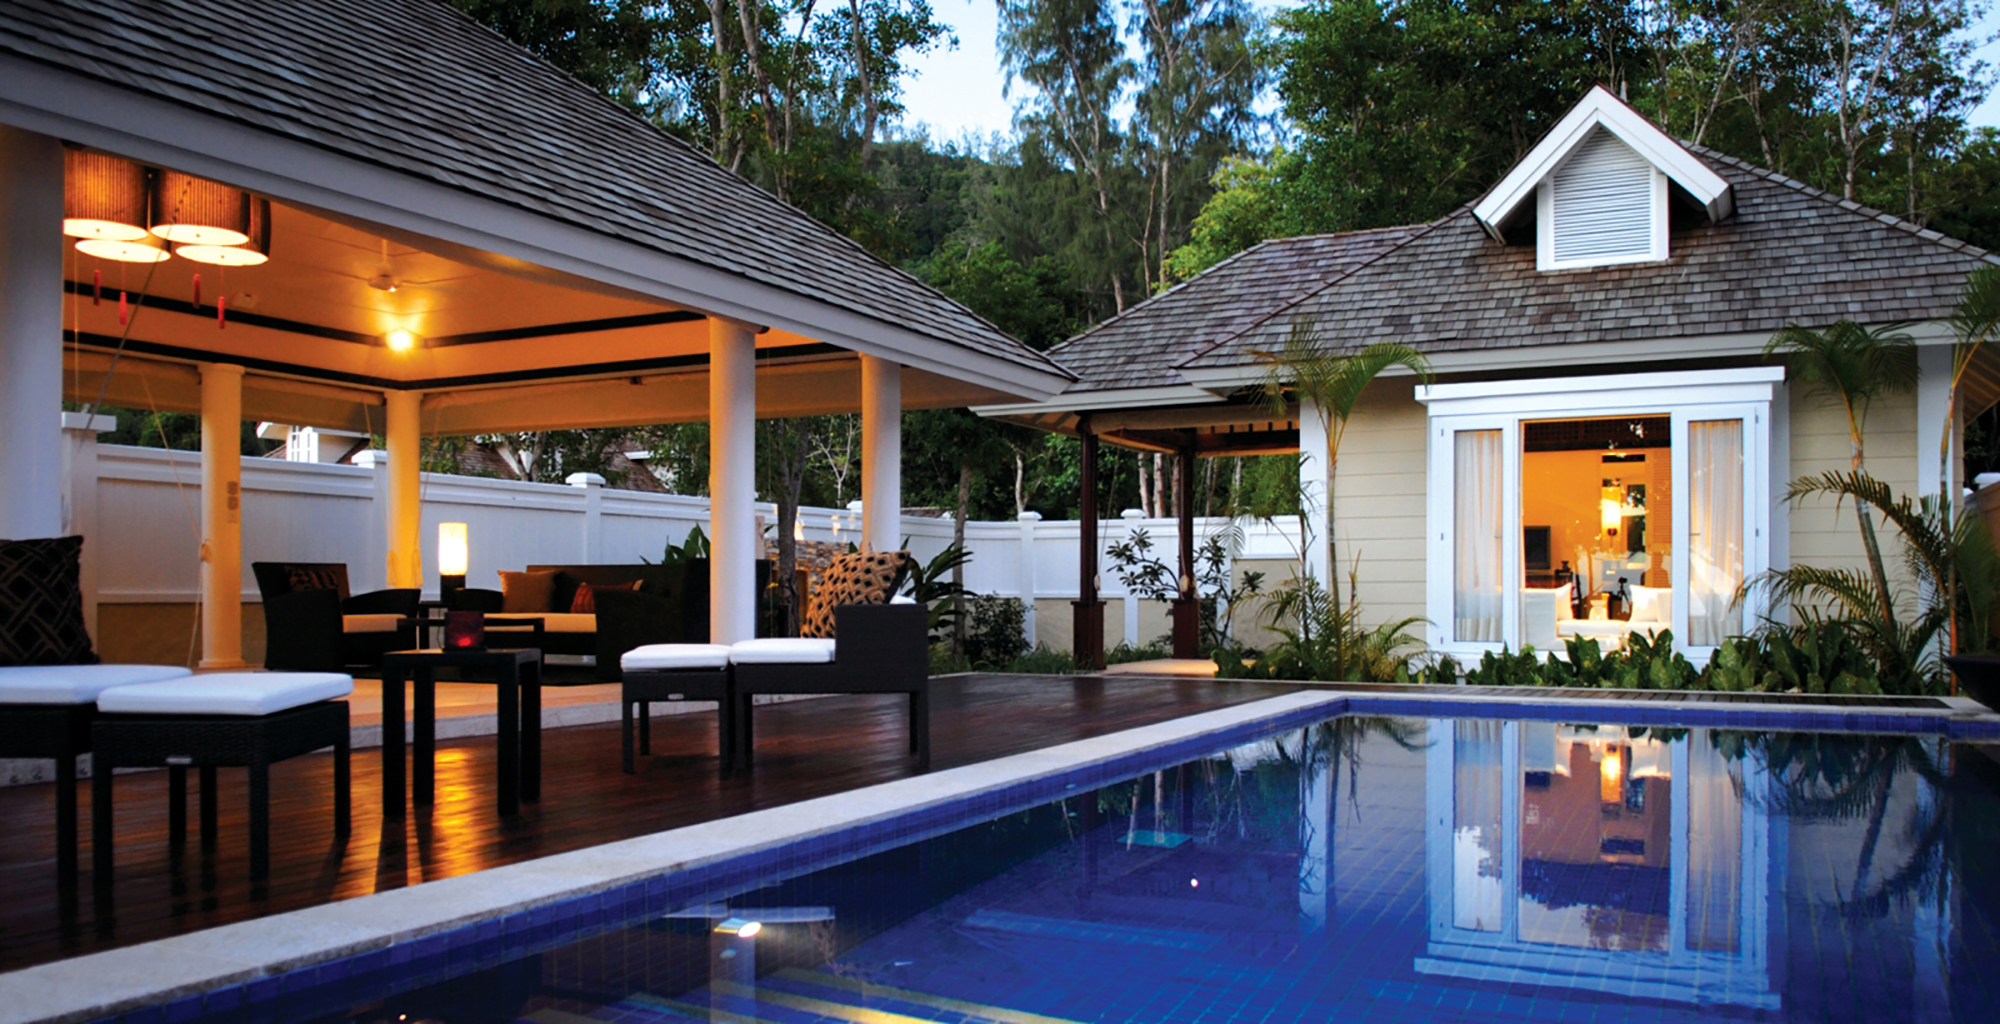 Seychelles-Banyan-Tree-Hotel-Swimming-Pool